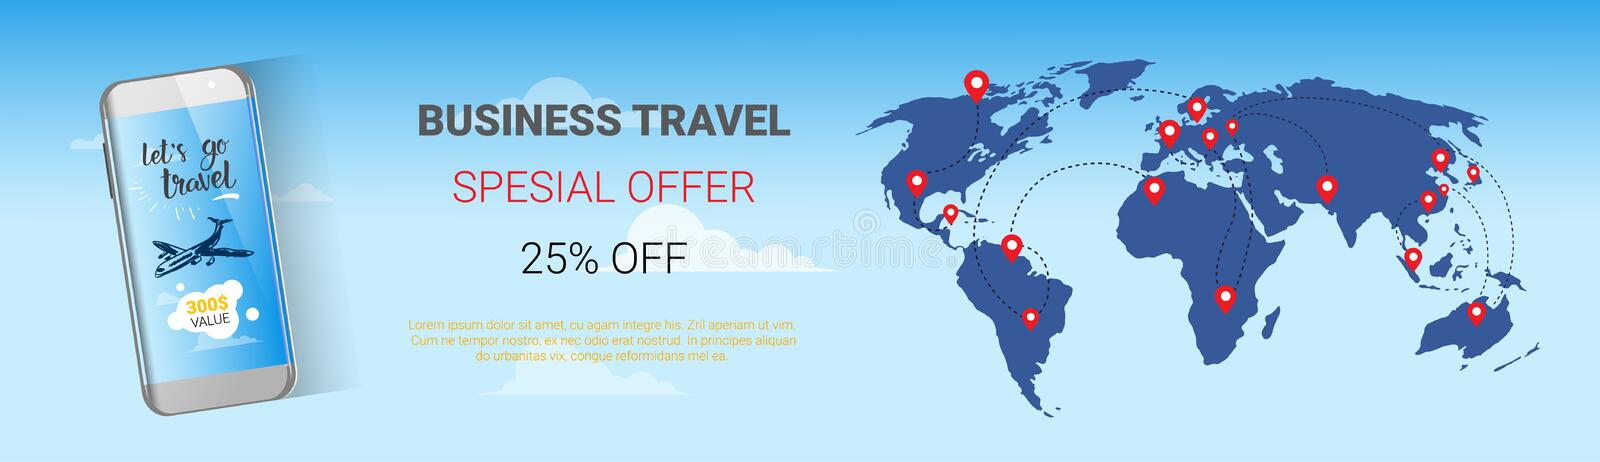 Travel Company Sale Banner Business Tour Special Offer Template Horizontal Poster with World Map Background, Tourism royalty free illustration